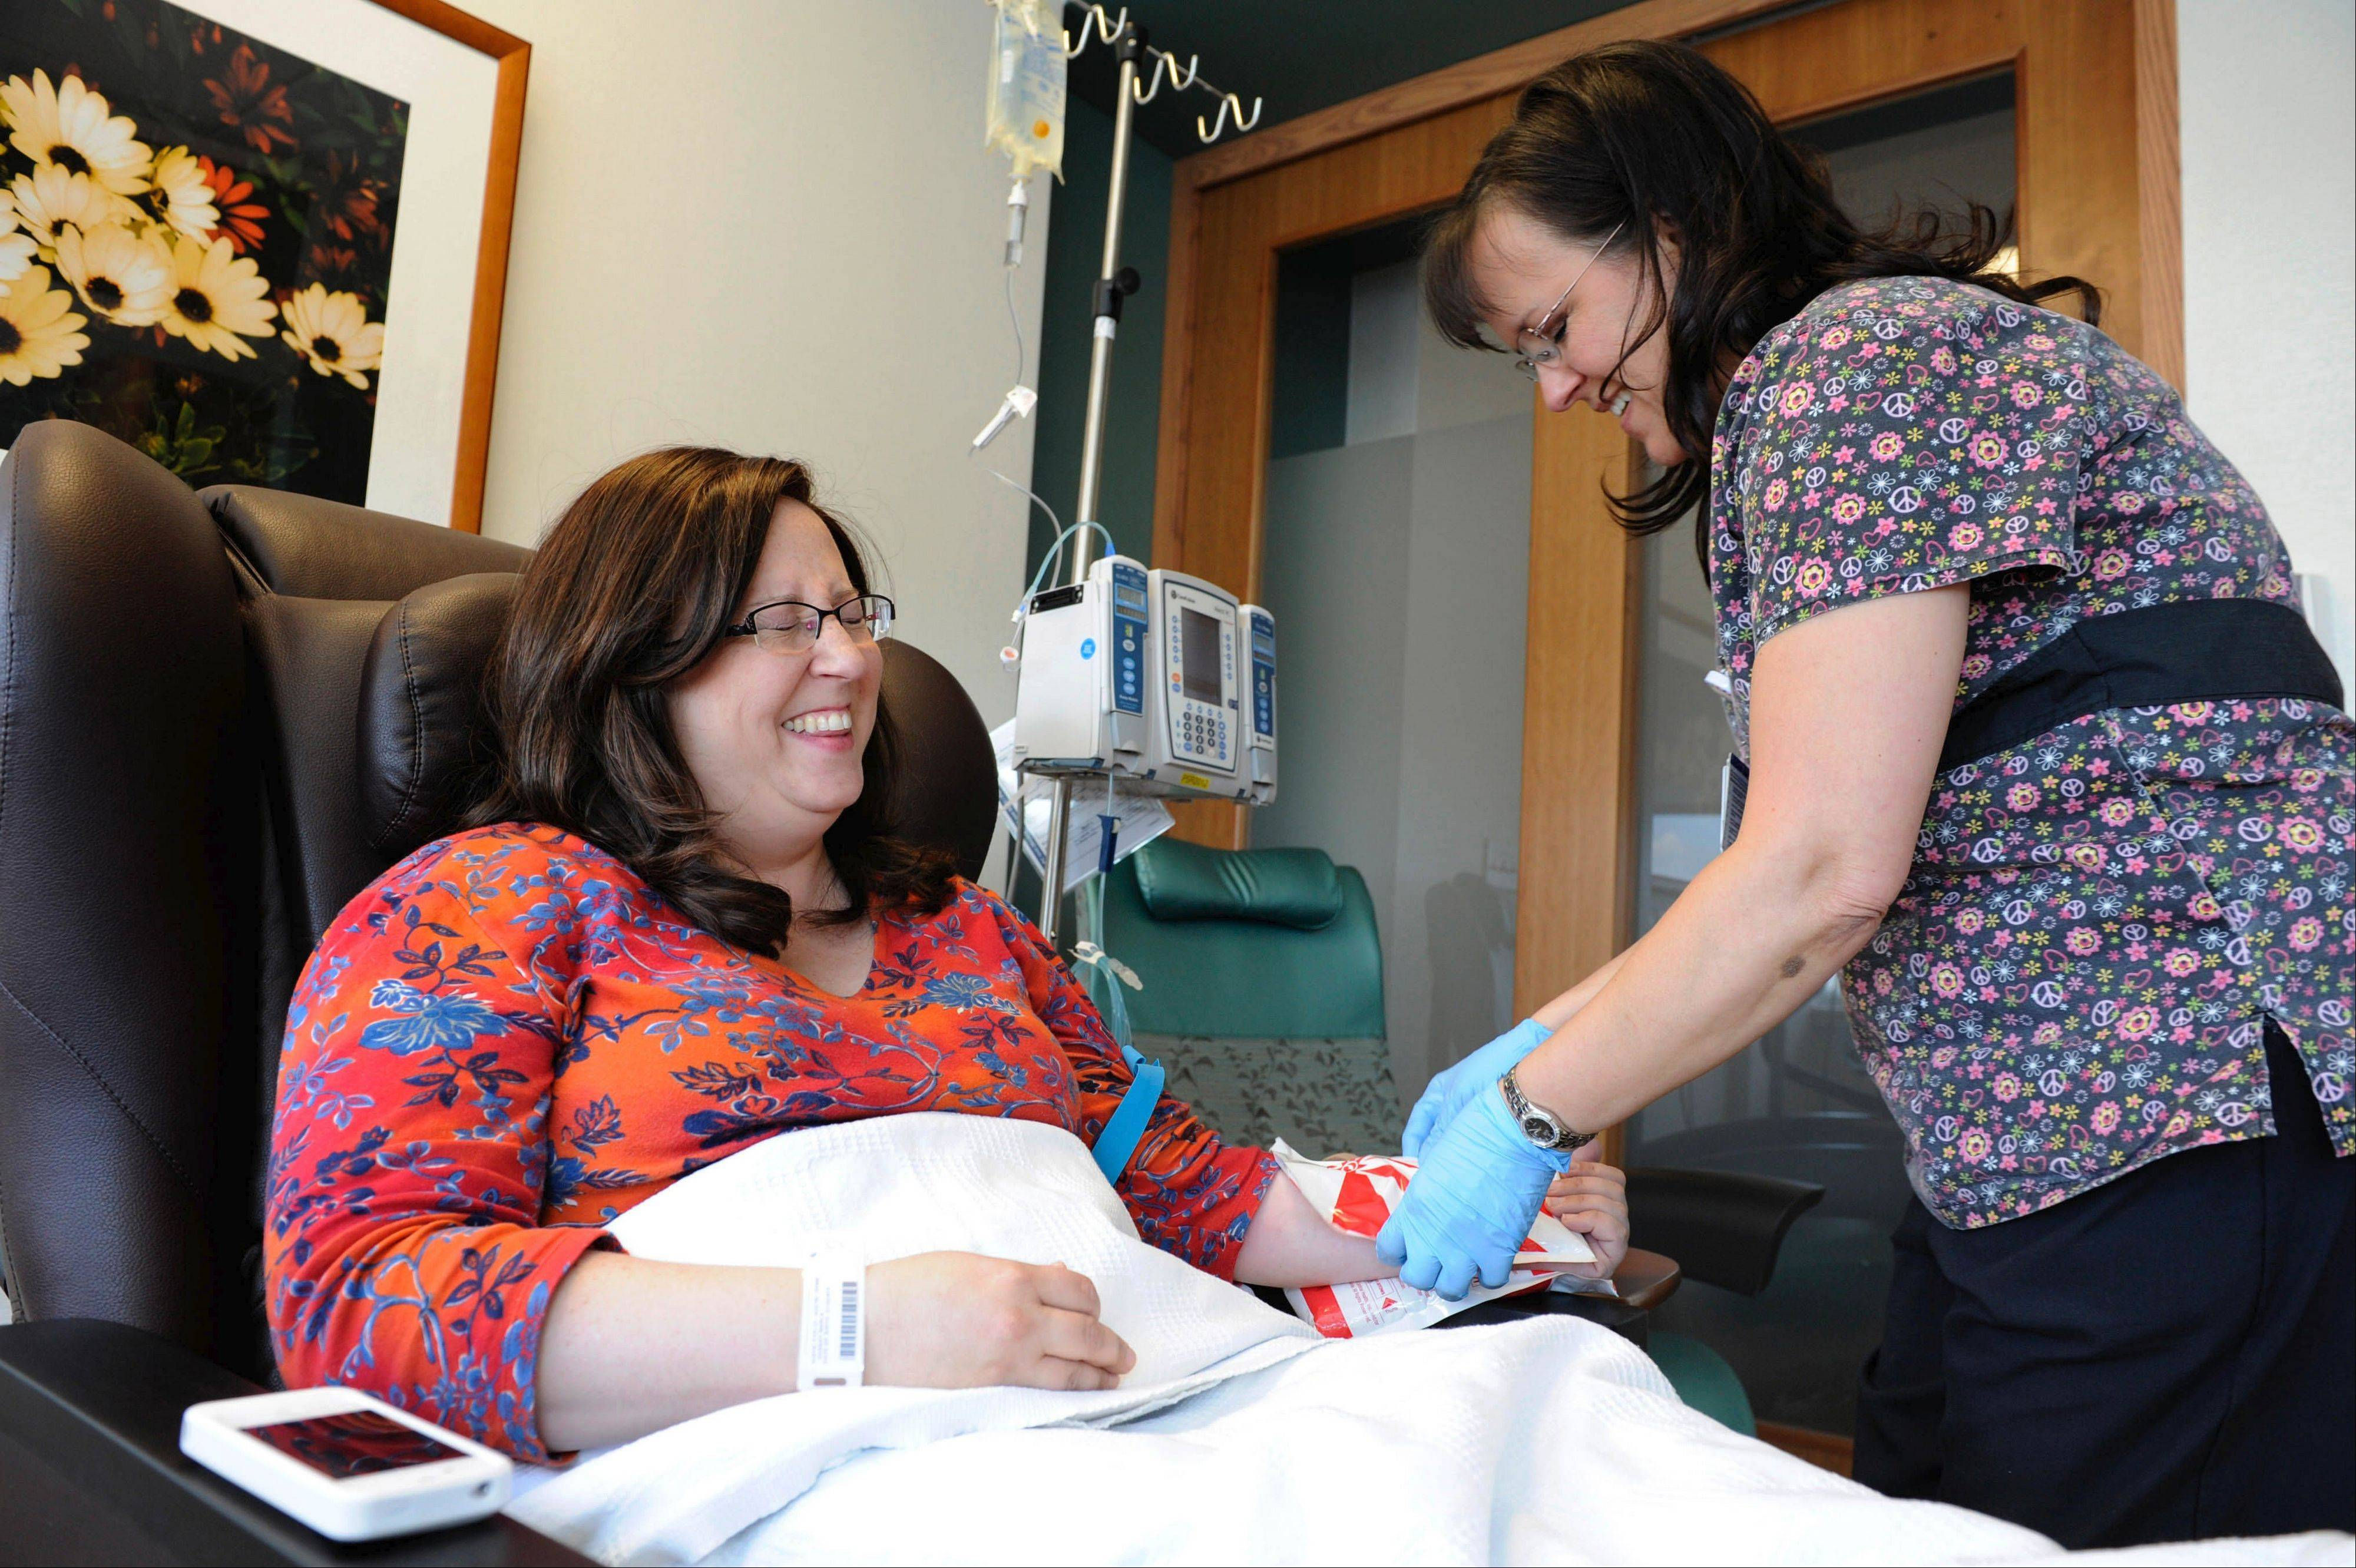 Marla Dansky, left, shares a light moment with registered nurse Joy Overton before receiving chemotherapy at the Duke University Cancer Center.